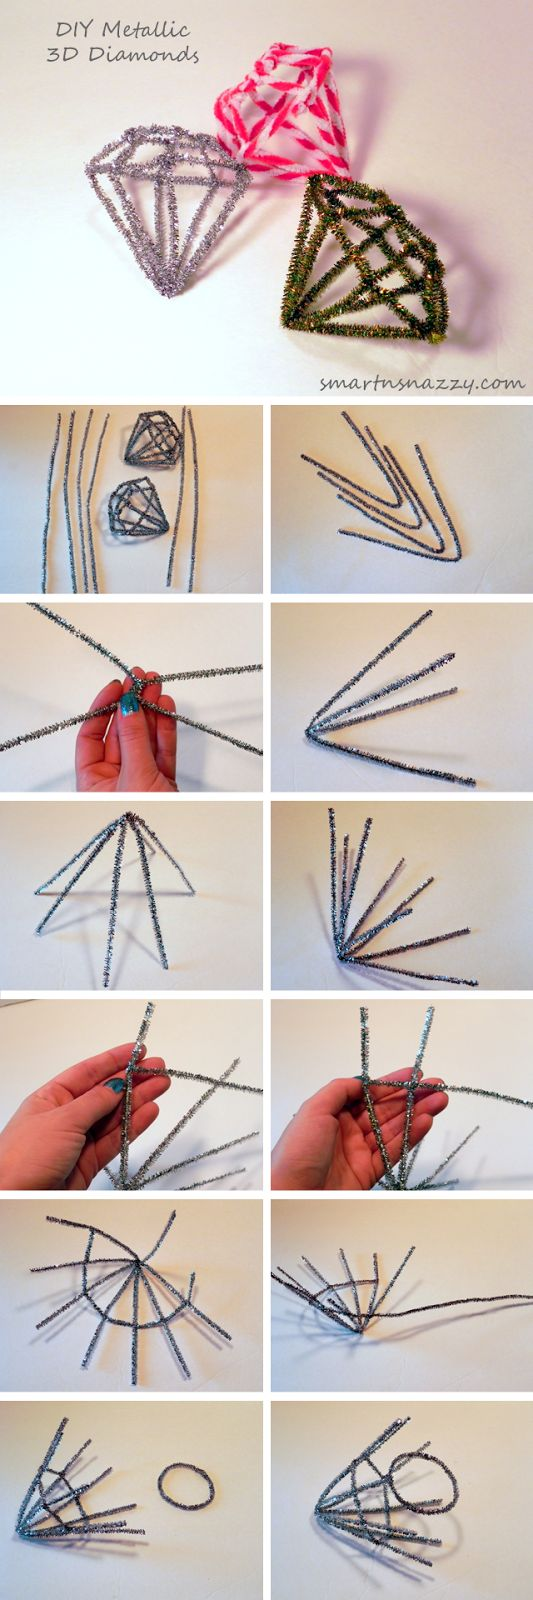 pipe cleaners crafts best 25 pipe cleaner crafts ideas on pipe 2700